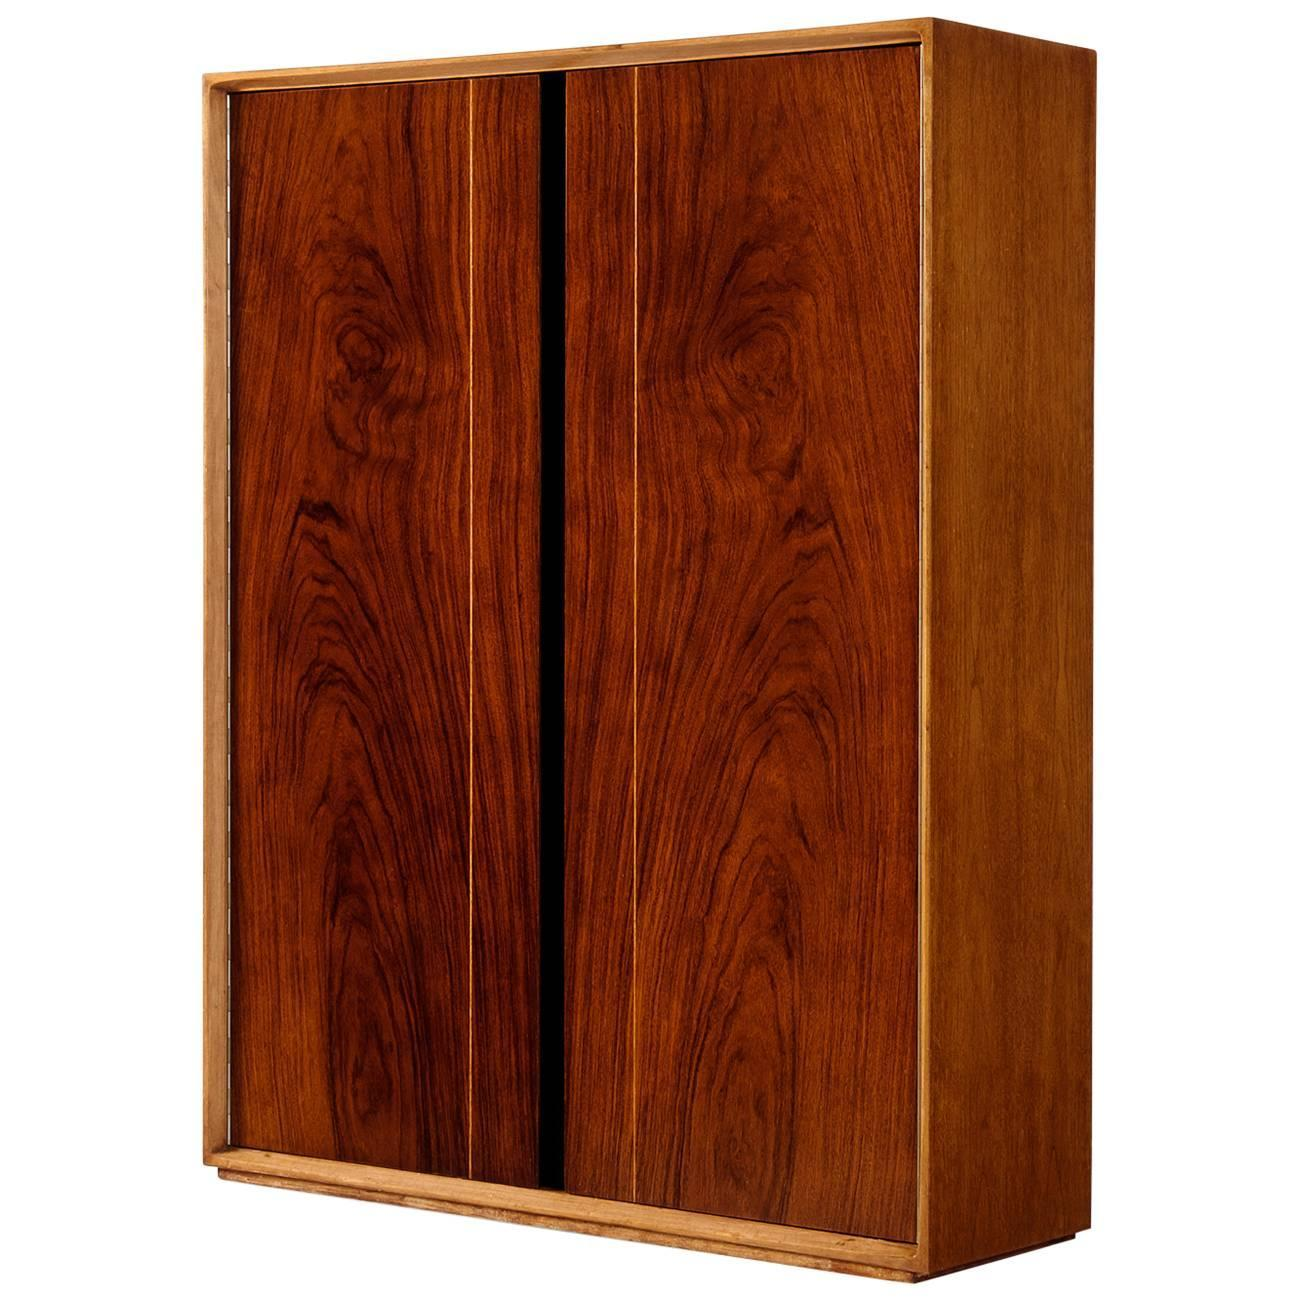 De coene 39 madison 39 wall mounted bar cabinet in walnut for for Expressive kitchen cabinets